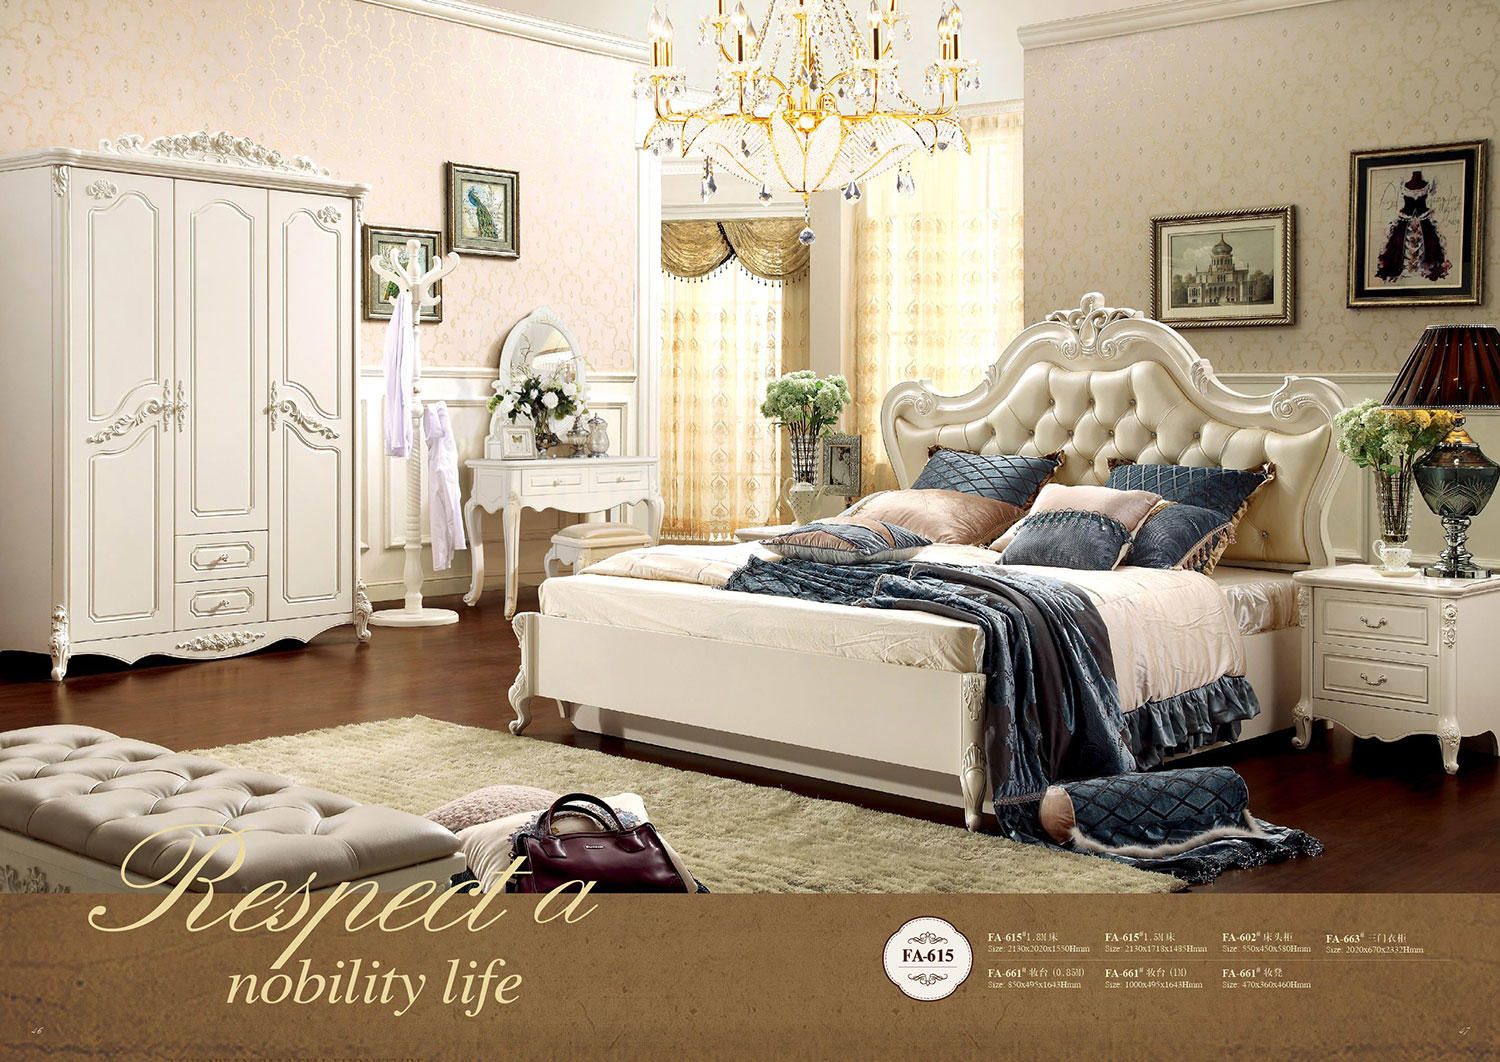 Luxury Bedroom Furniture Welcome To Kingly Decor Luxury Bedroom Furniture